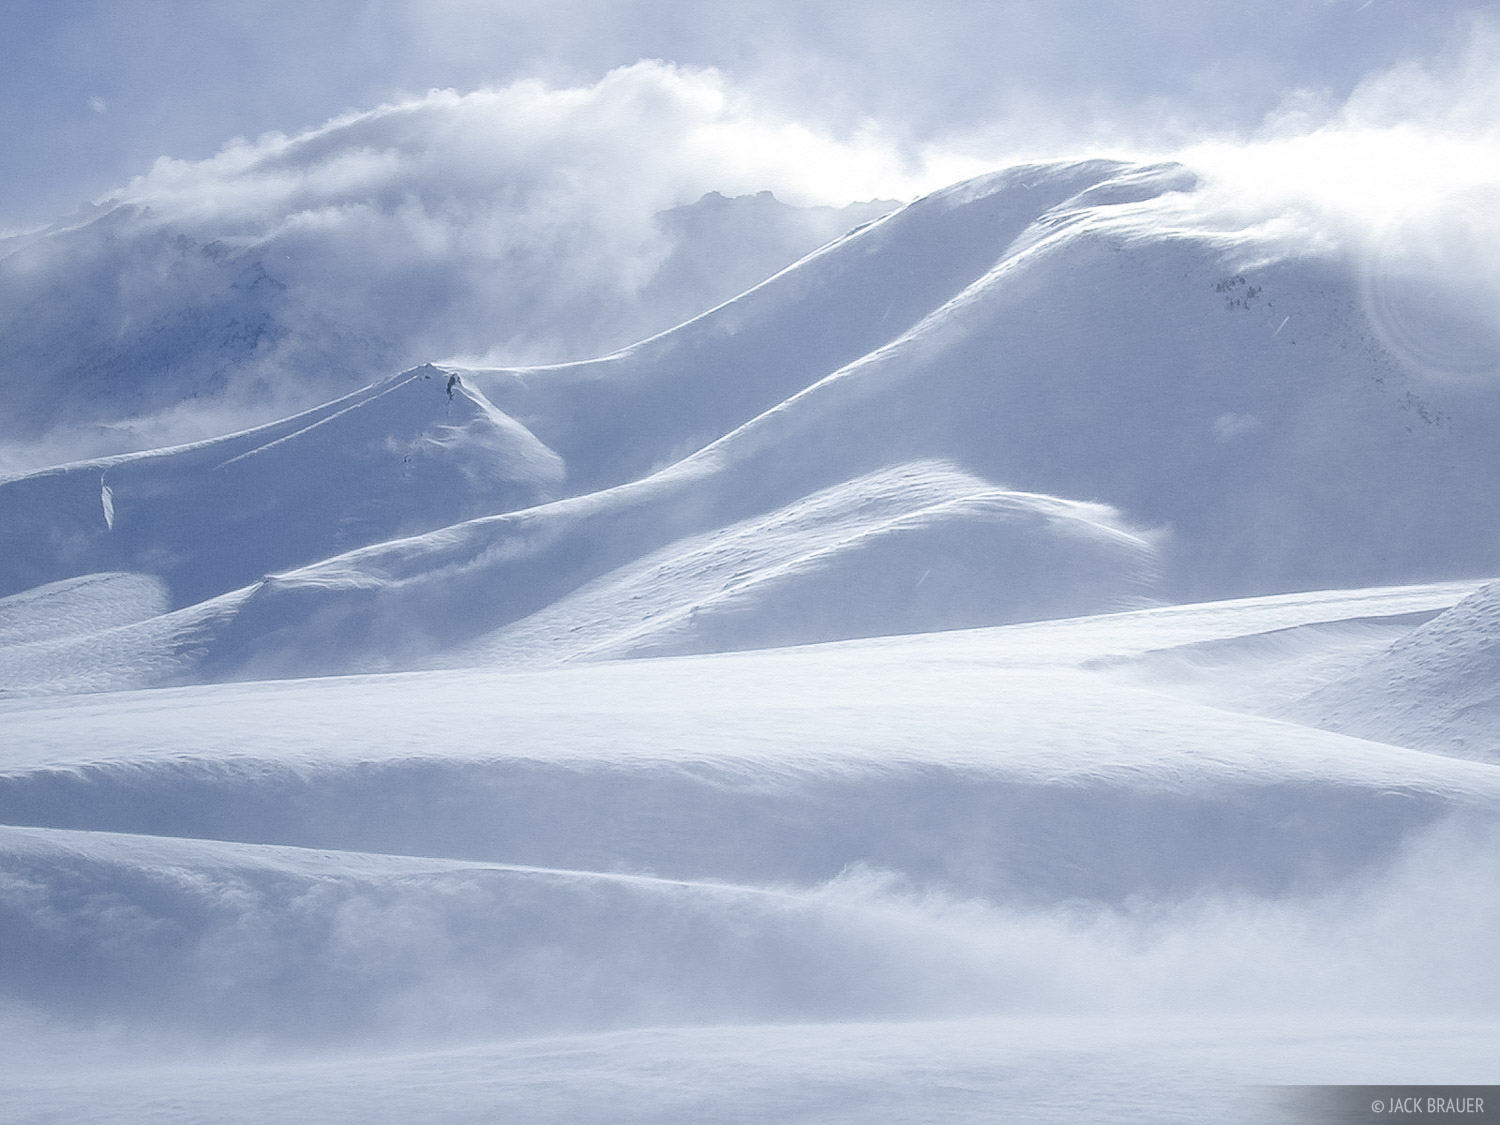 windblown, powder, snow, Argentina, Las Leñas, photo